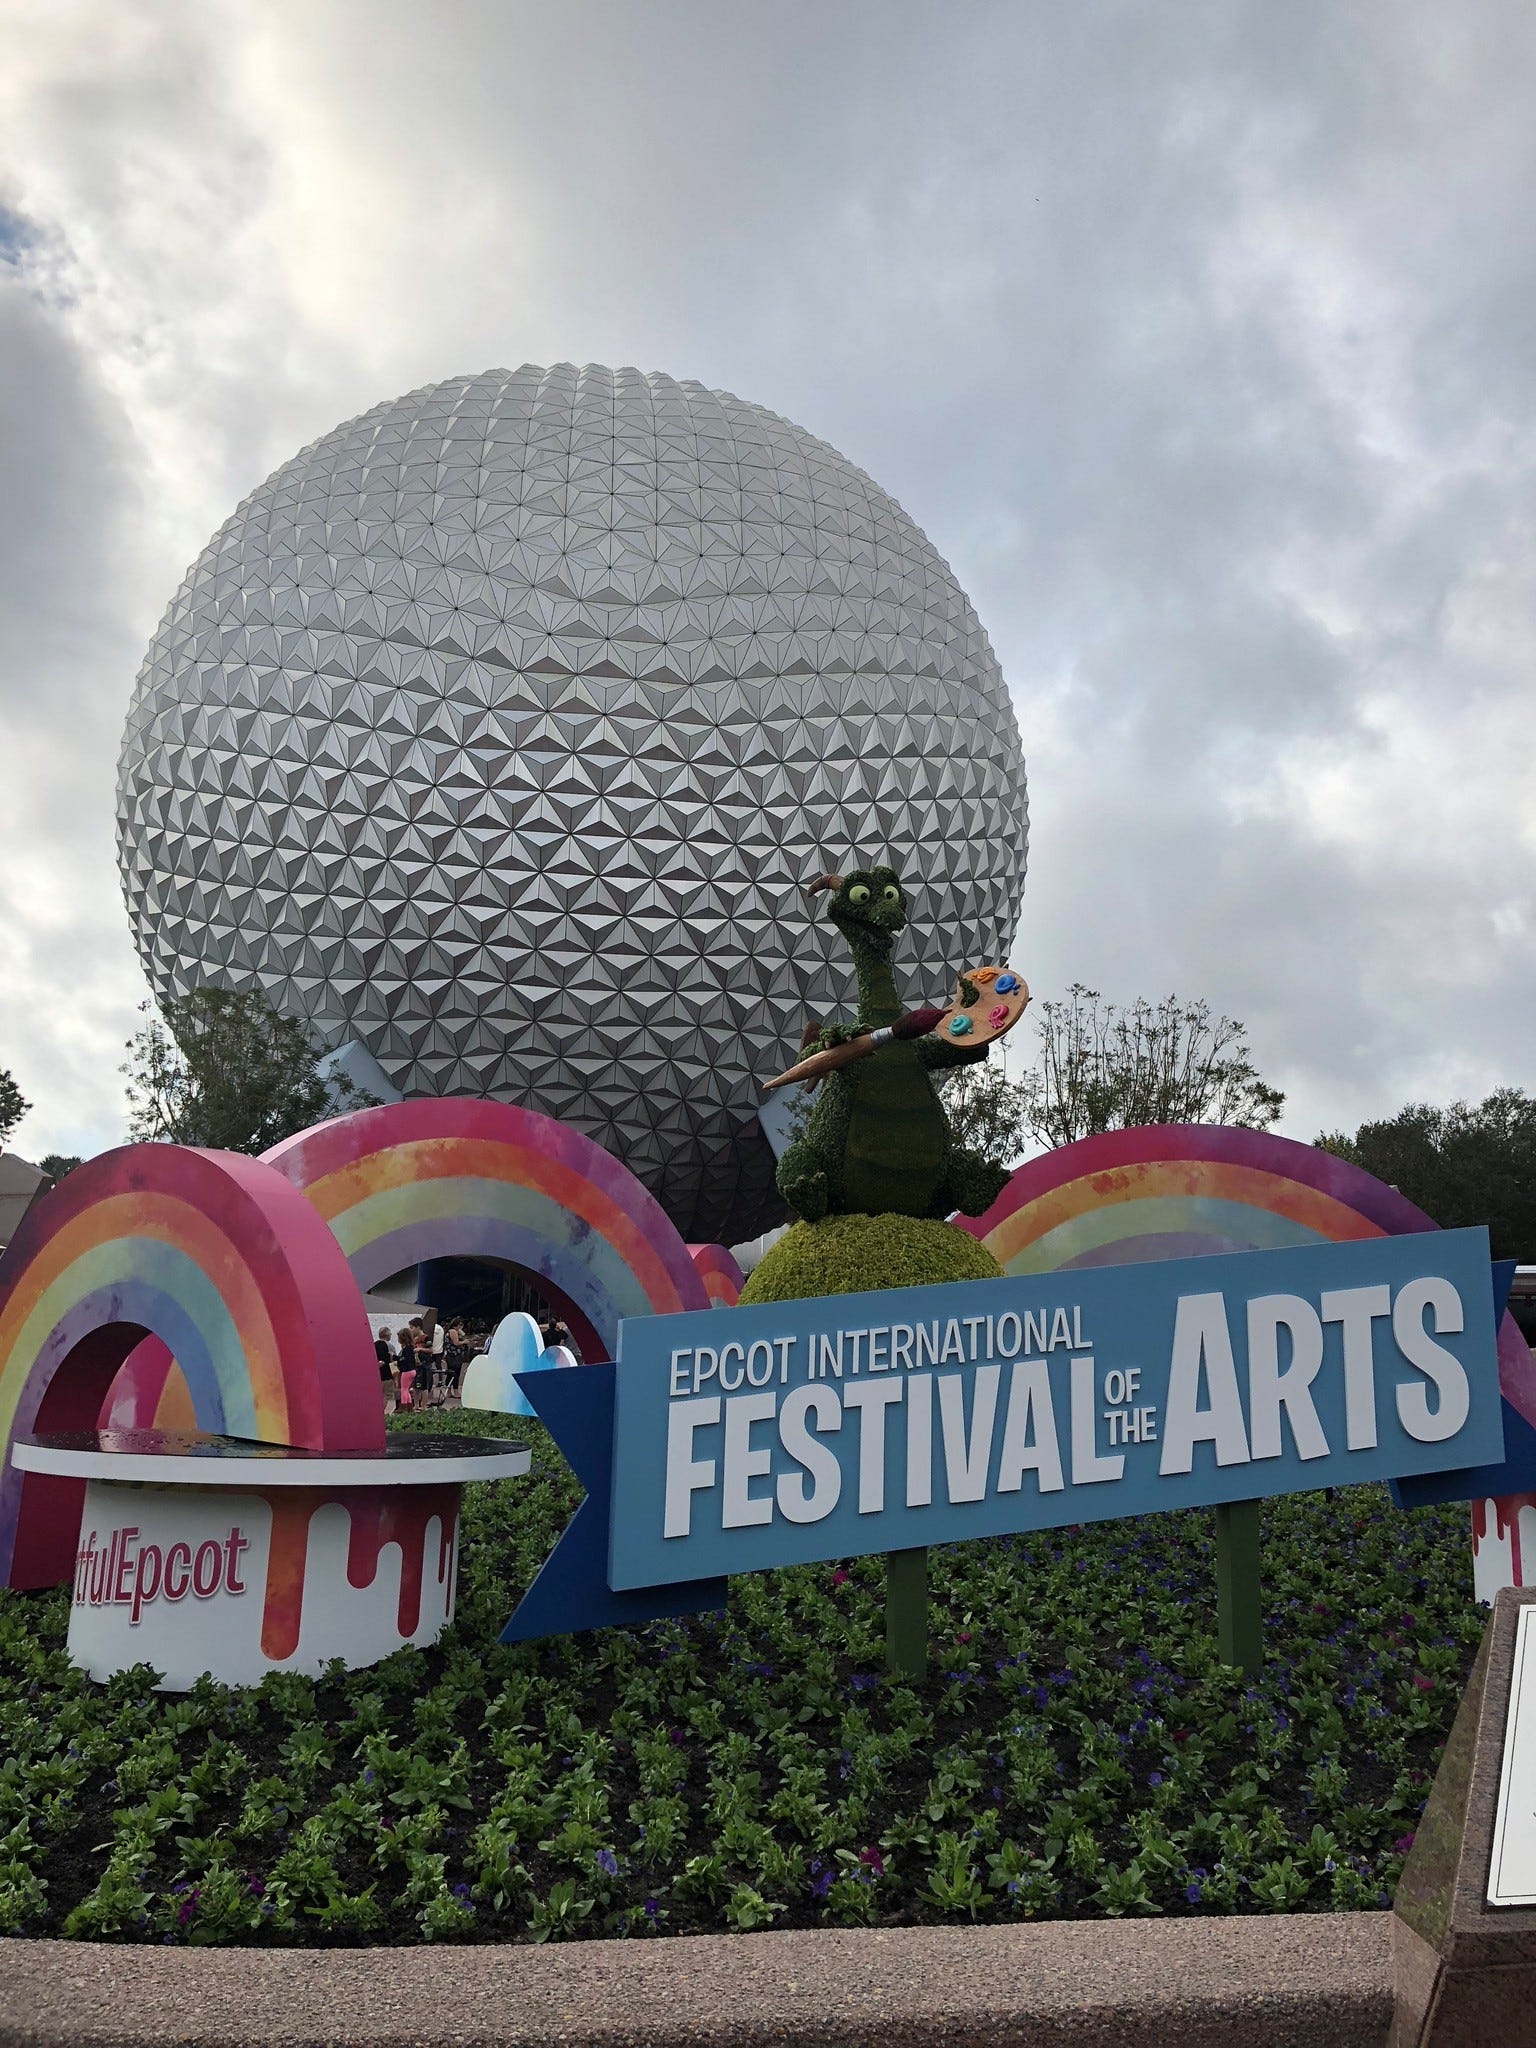 636513778753063298-EpcotEntrance Here are 10 things to do at Epcot's International Festival of the Arts